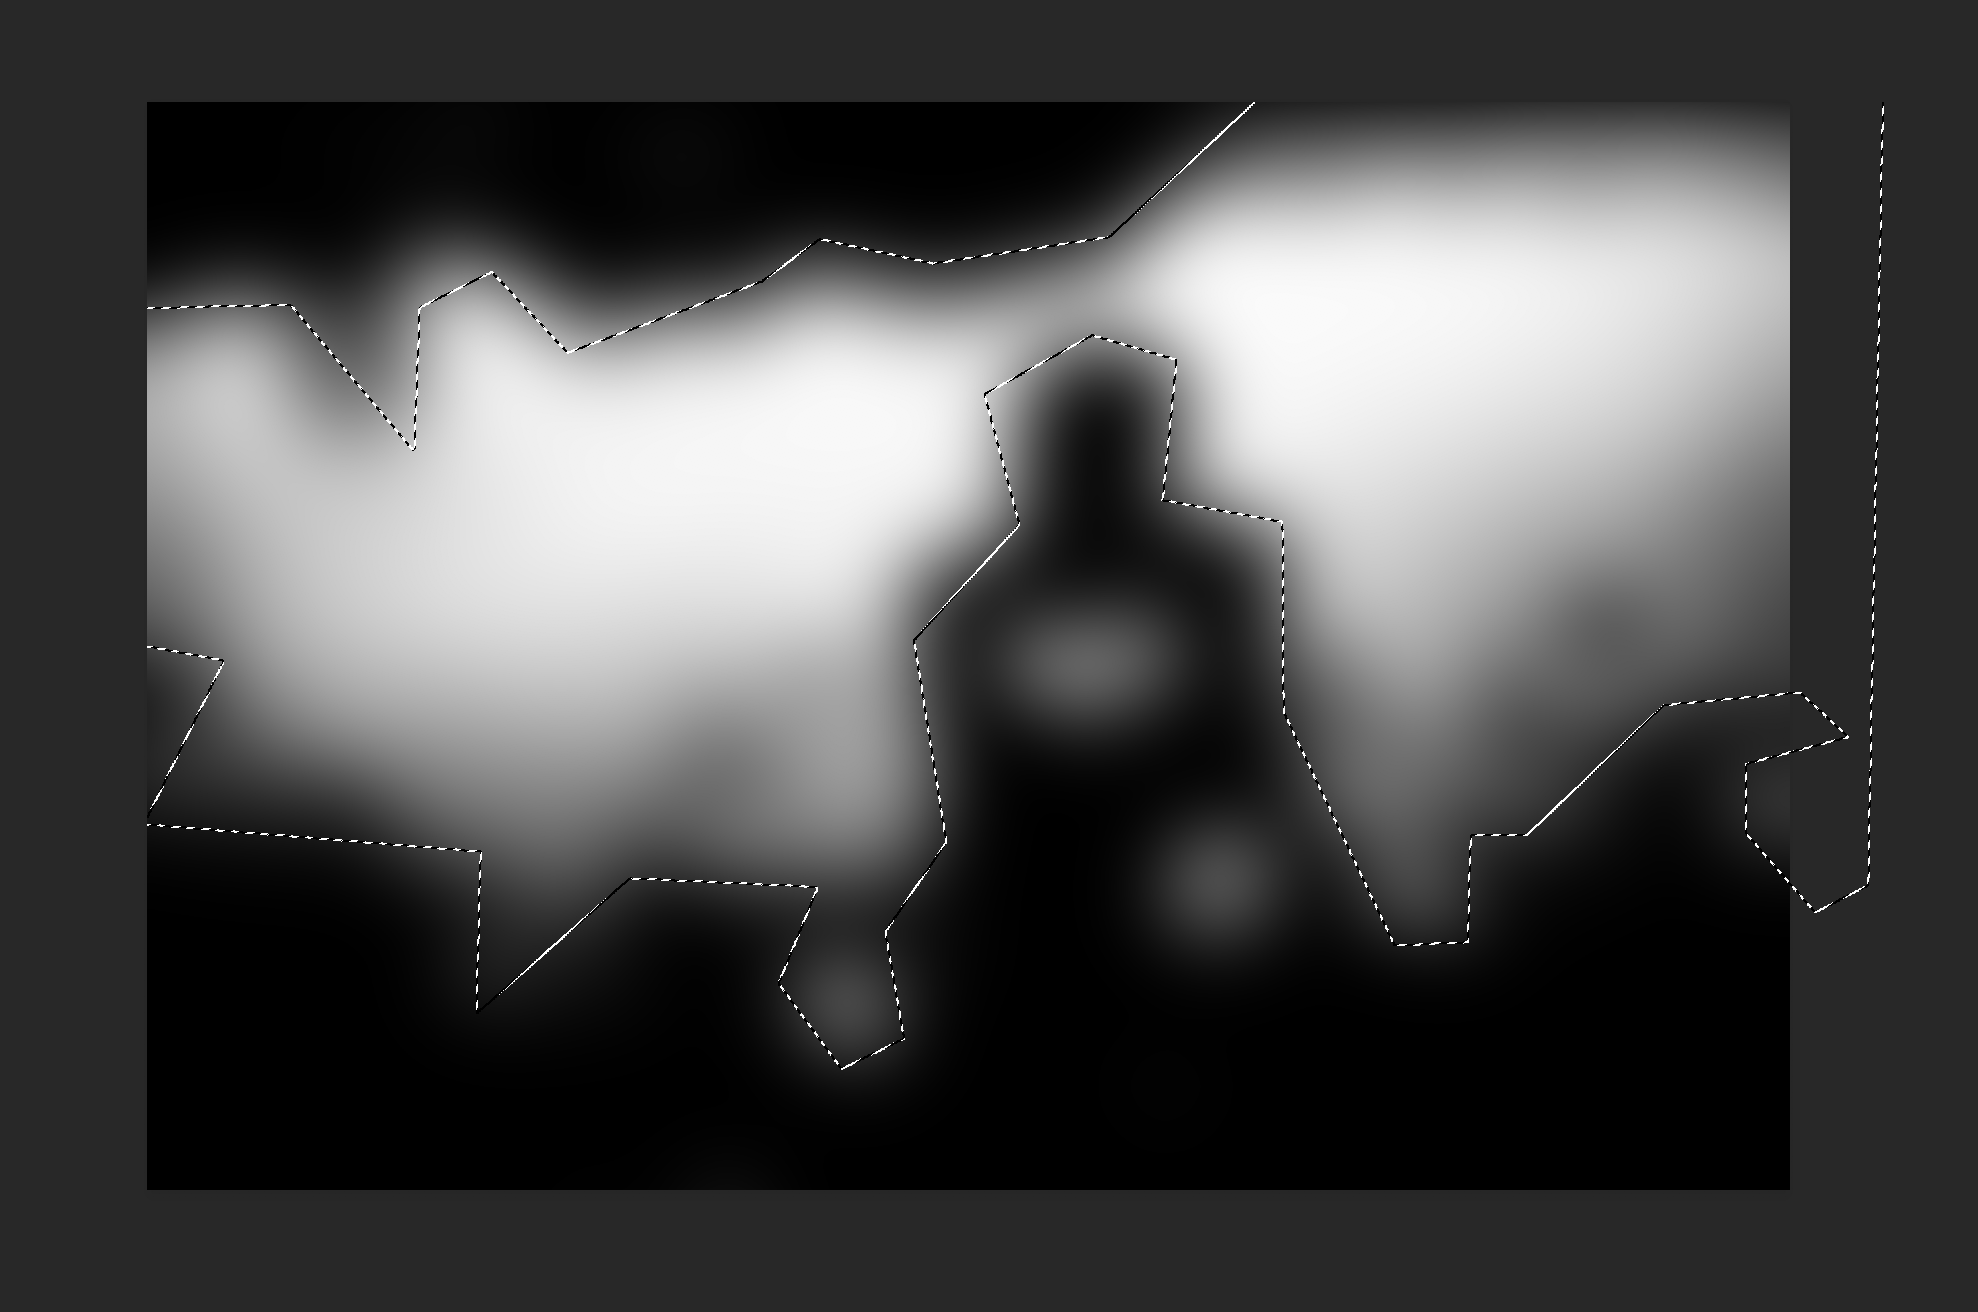 Using polygonal lasso tool in Photoshop, to select the white bits.